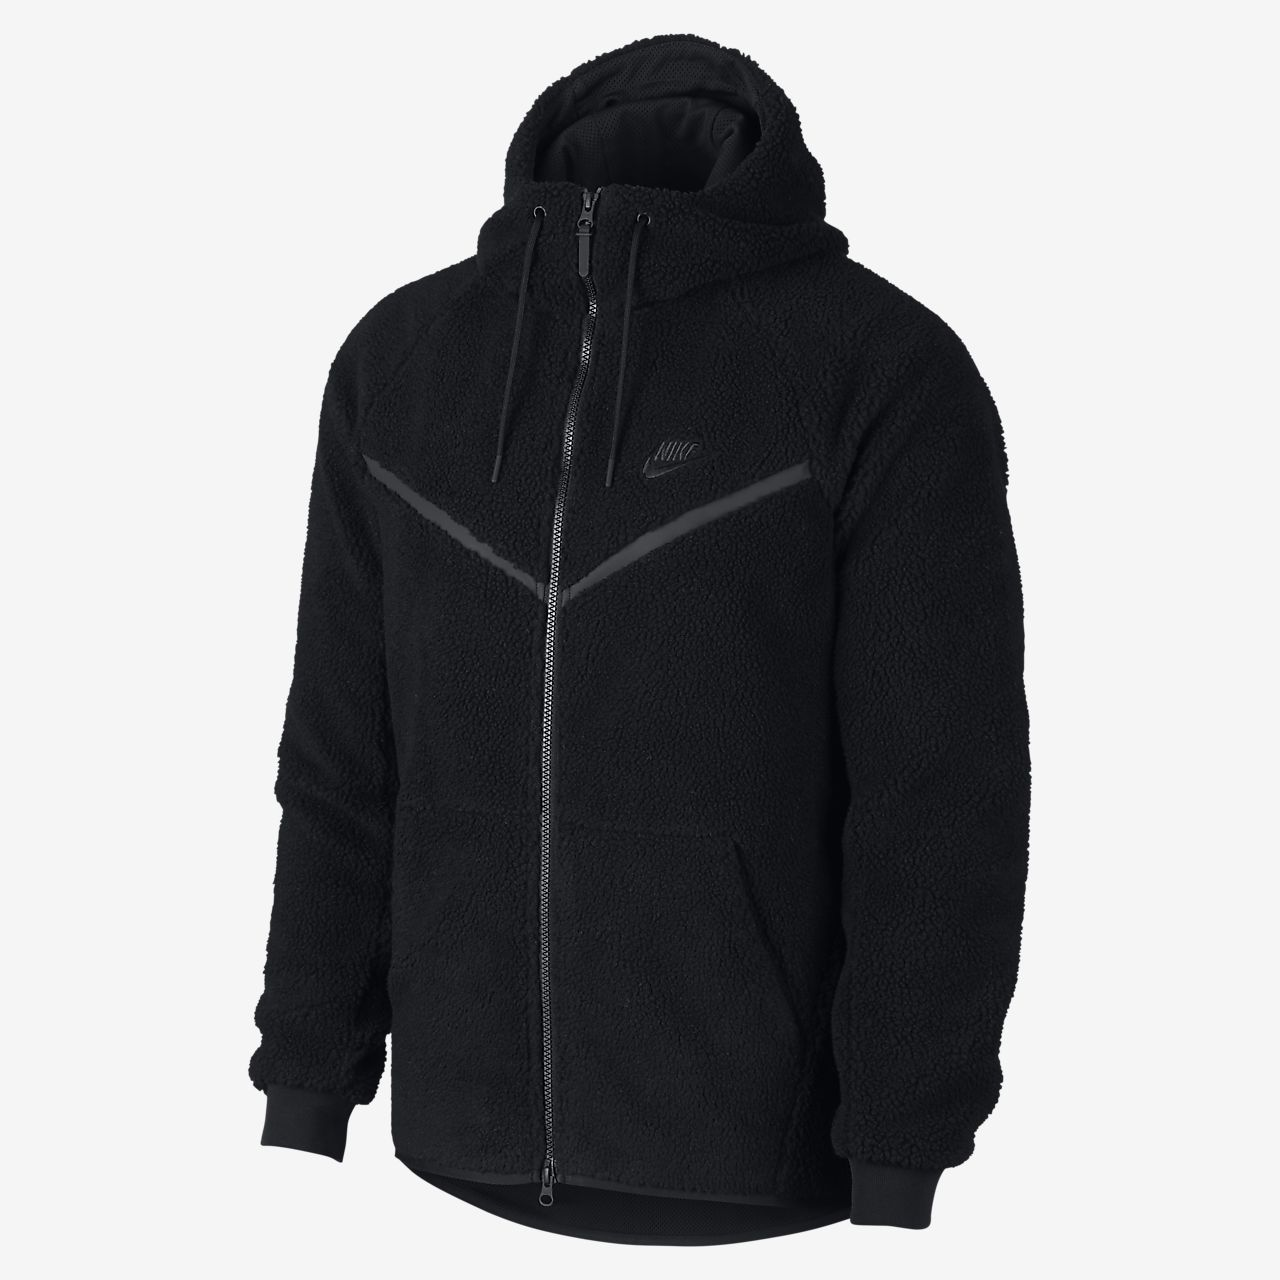 7dad1056502 Nike Sportswear Windrunner Tech Fleece Men's Sherpa Hoodie. Nike.com GB